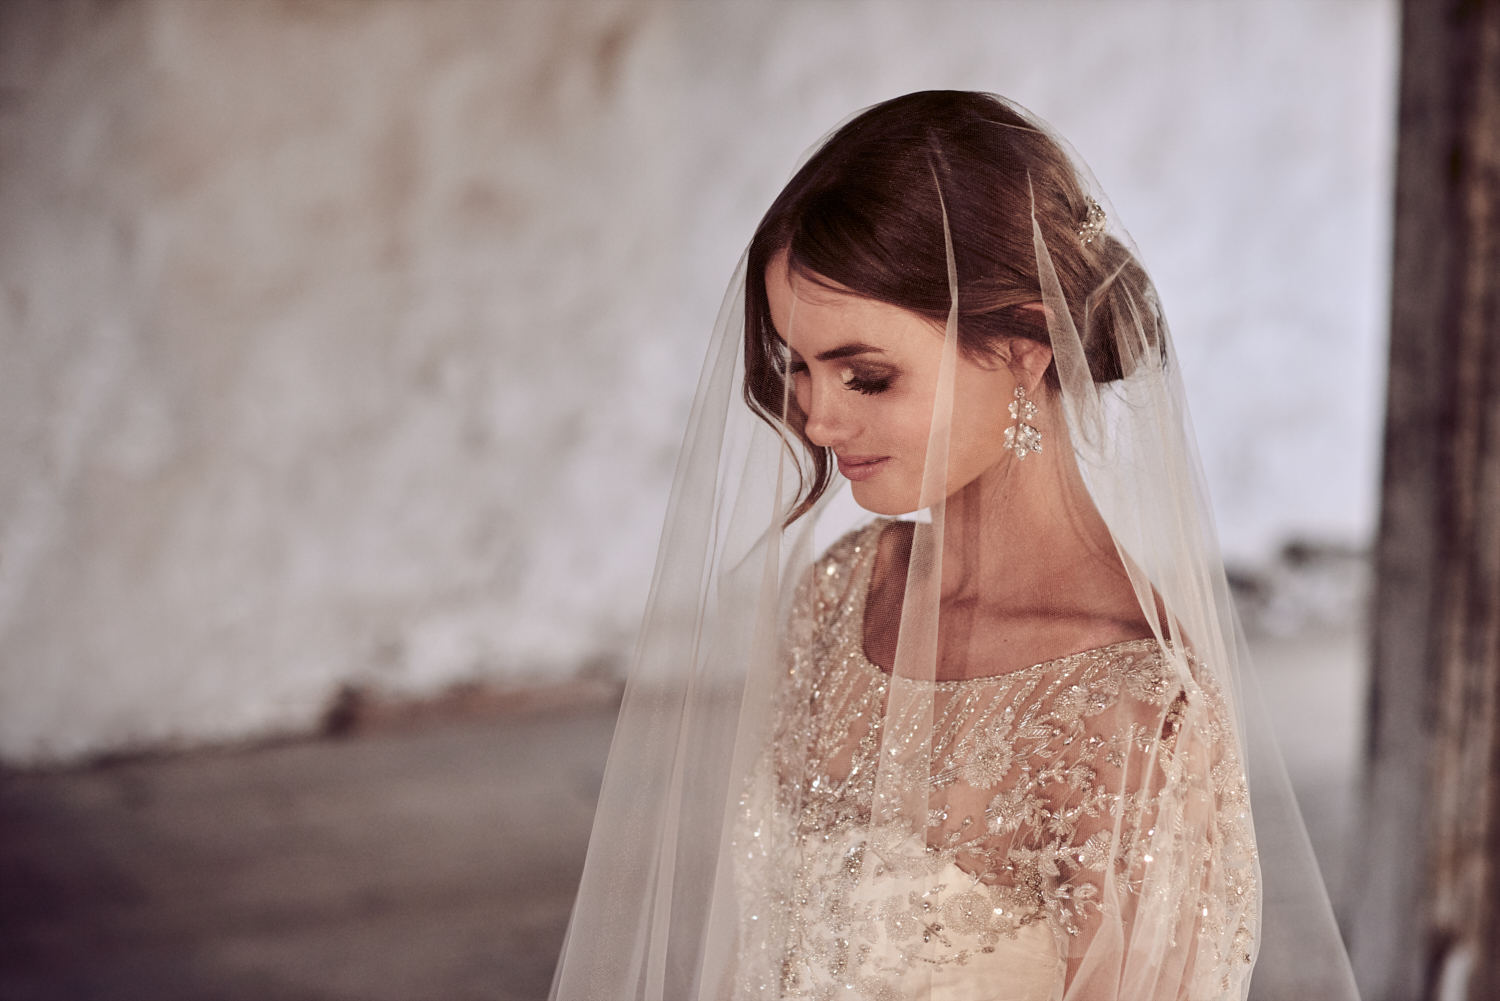 The Adele Dress styled with the Zara plain tulle veil (Chapel Length with Blusher)